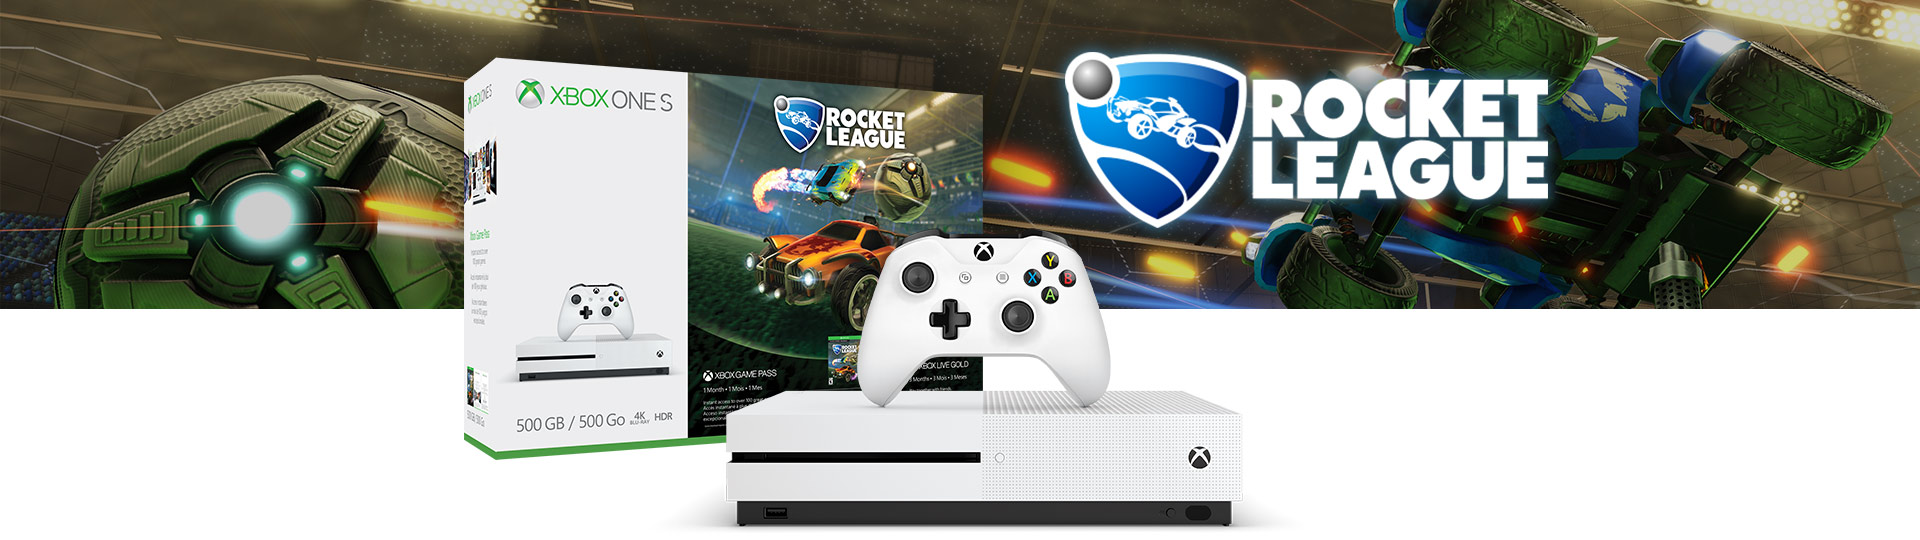 Xbox One S Rocket League Blast-Off Bundle (500 GB)